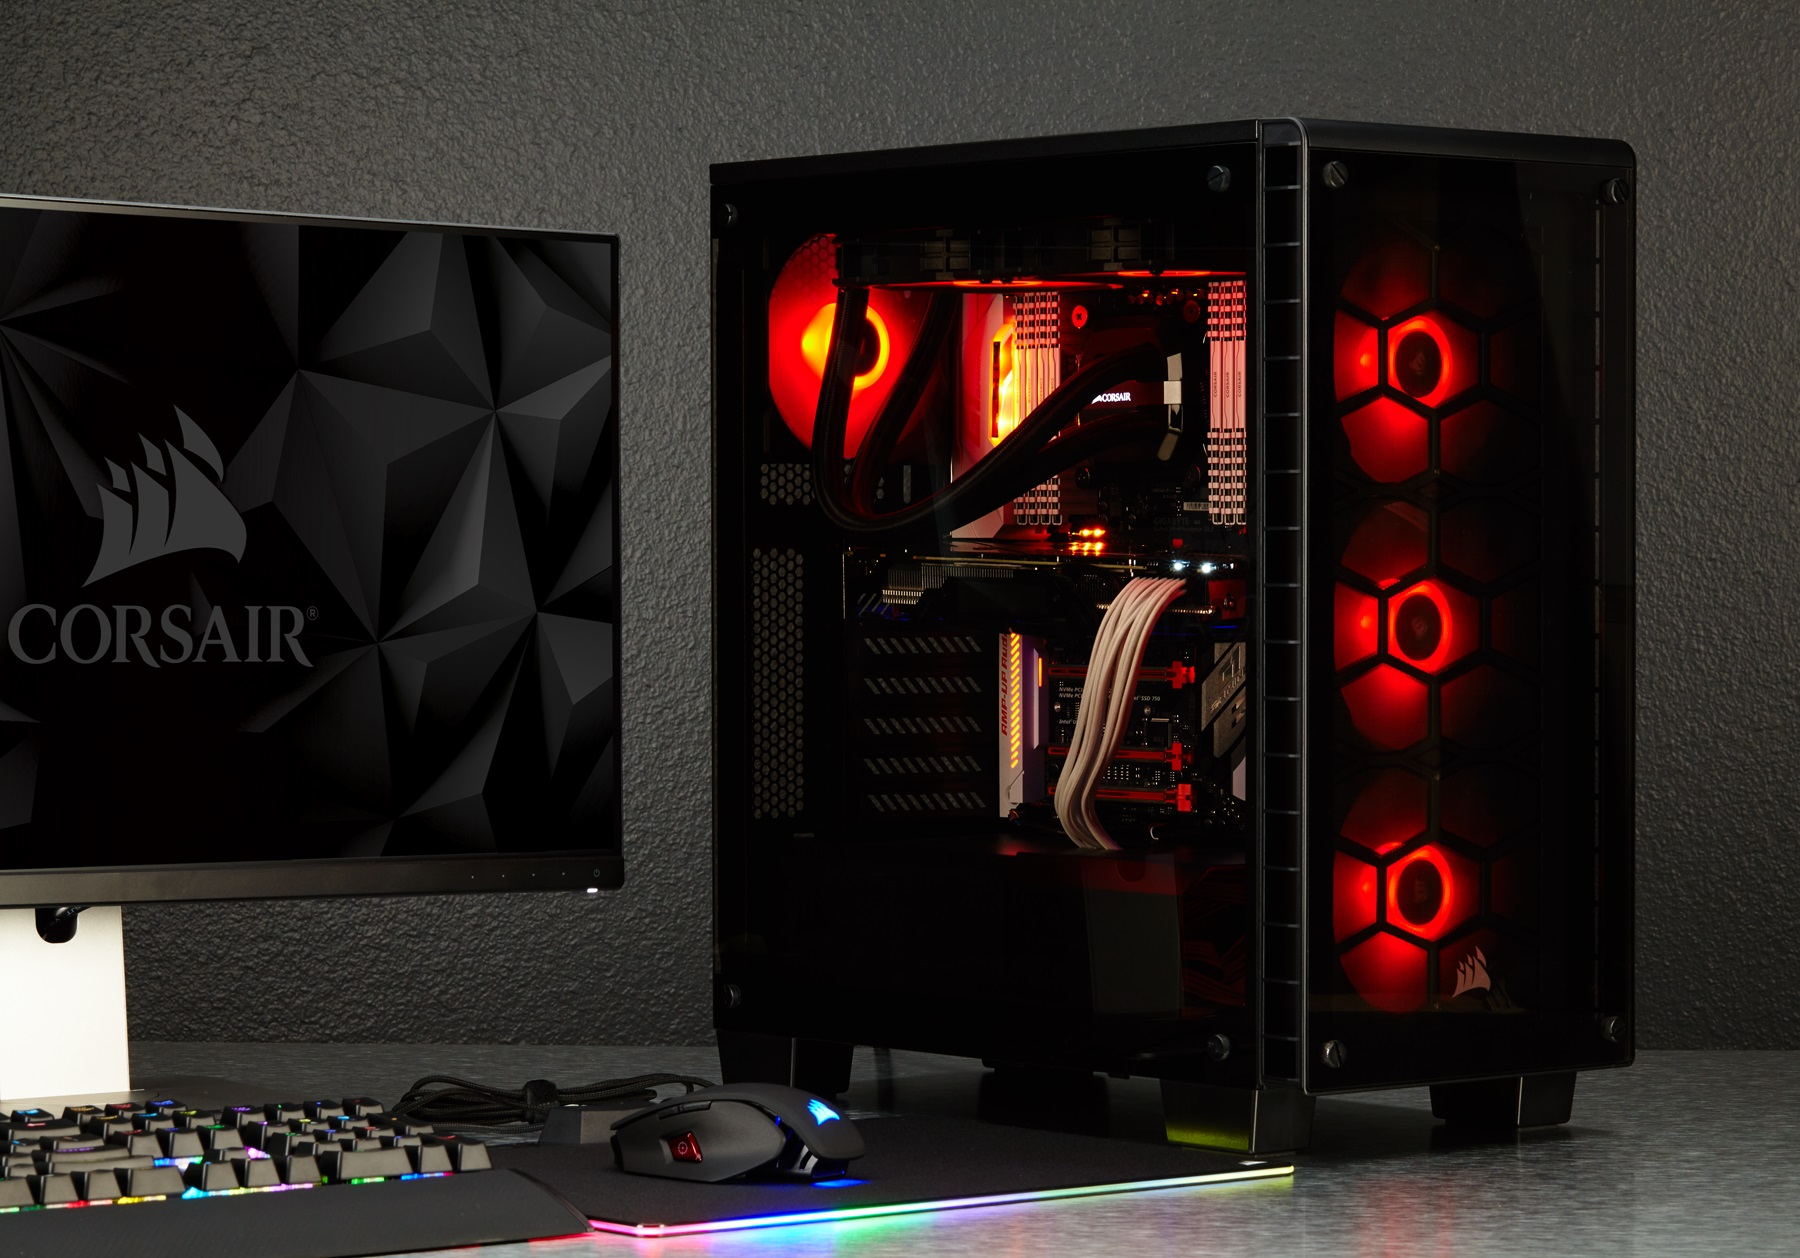 Corsair svela crystal 460x polaris mm800 e ventole hd120 e sp120 rgb